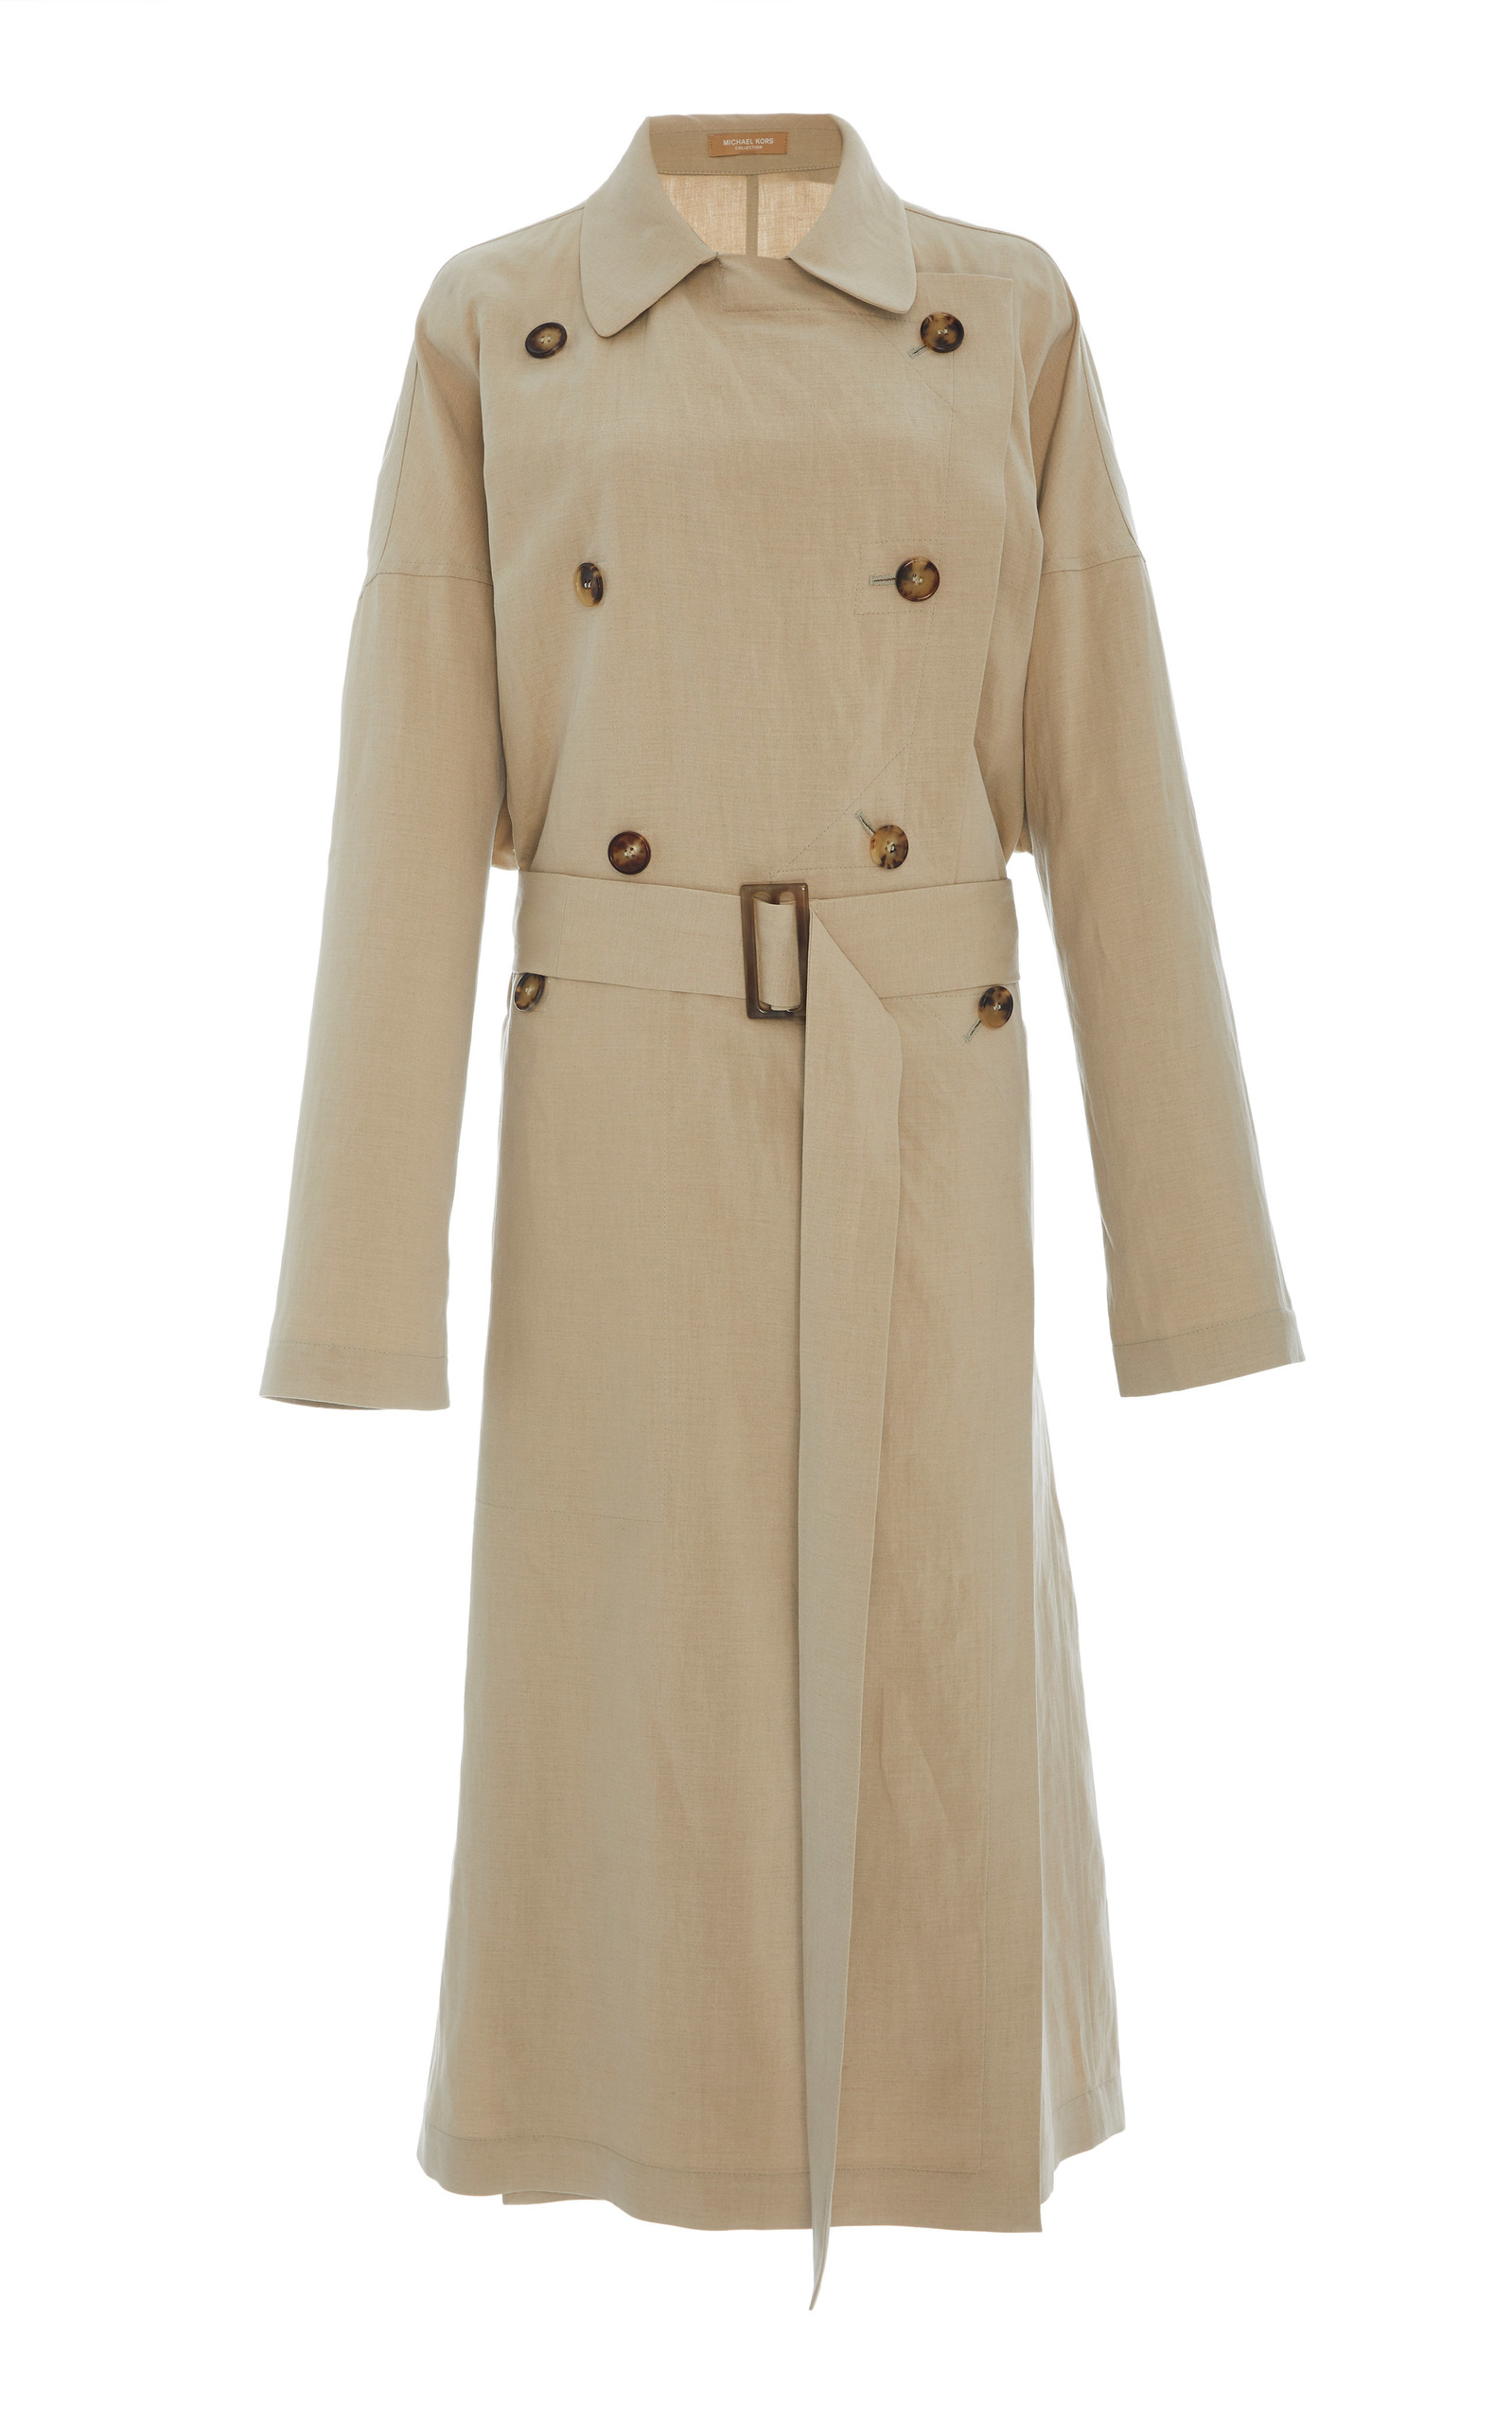 large_michael-kors-neutral-belted-linen-coat.jpg